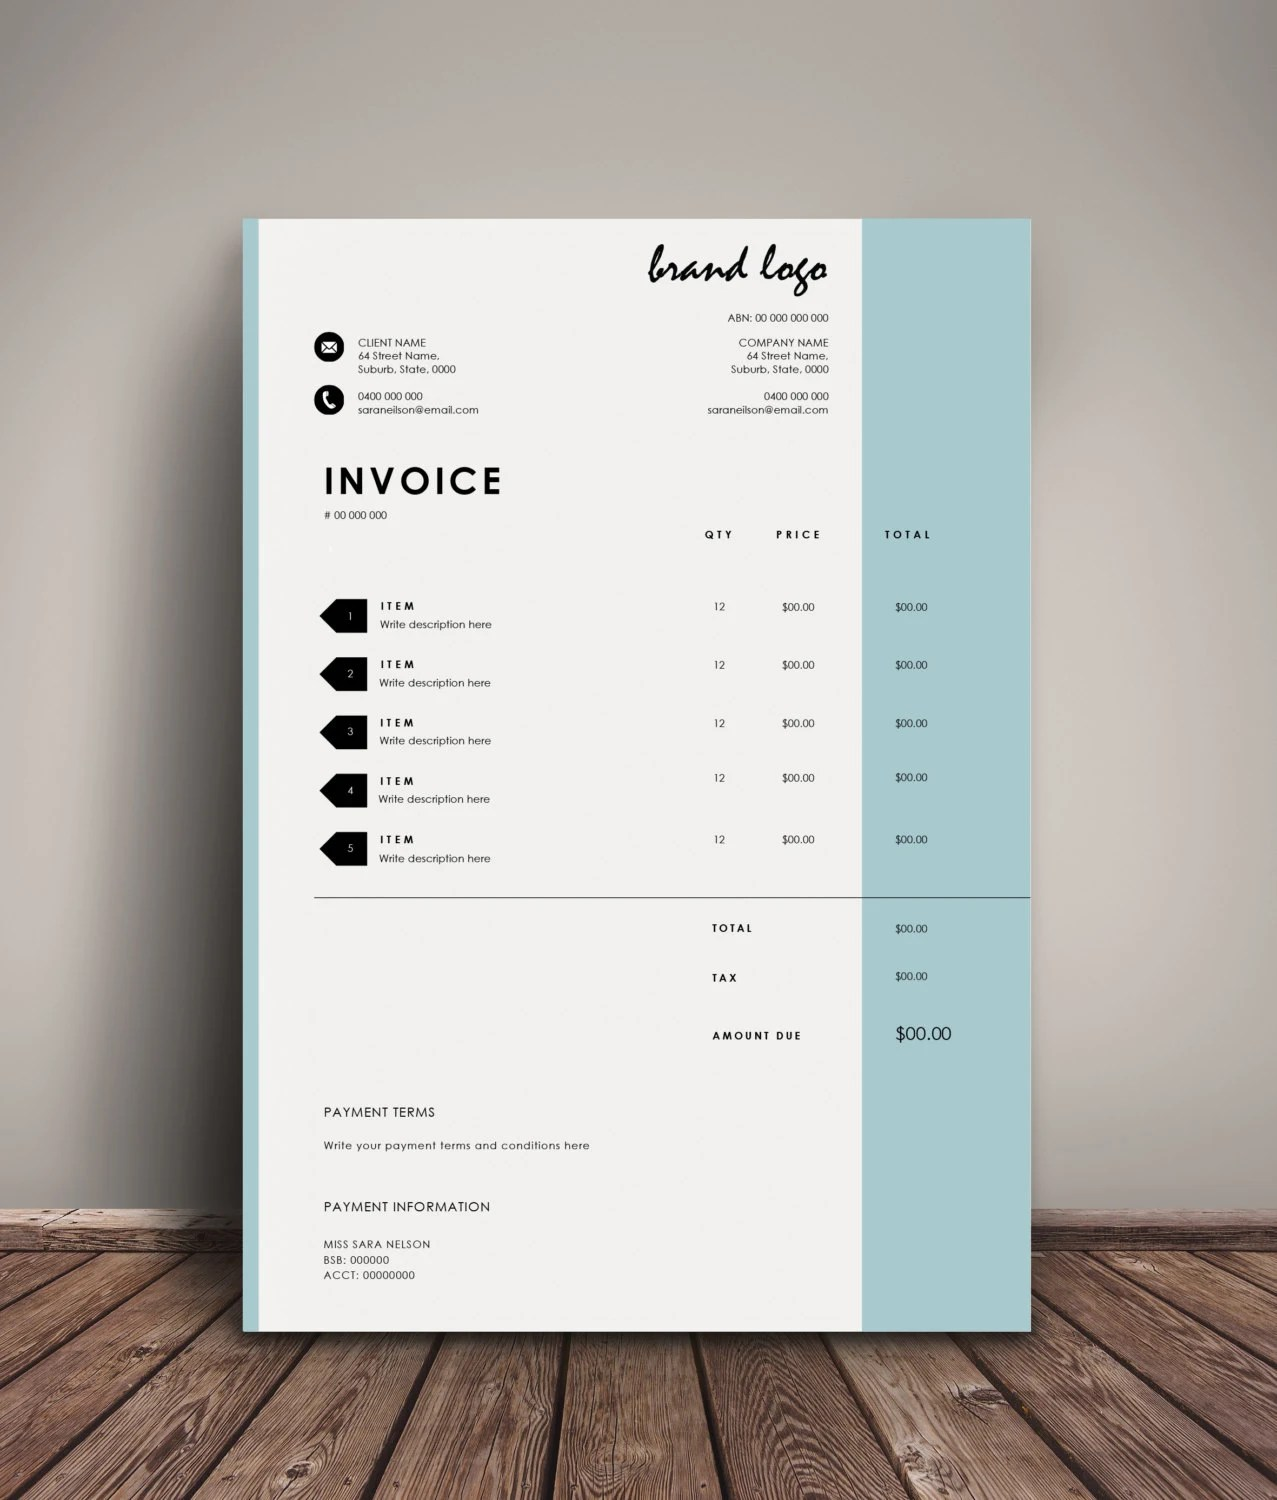 Free Printable Invoice Template Uk Invoice Example  Hotel Receipt     Invoice Template Receipt MS Word And Photoshop Template   Download free  invoice template for word online